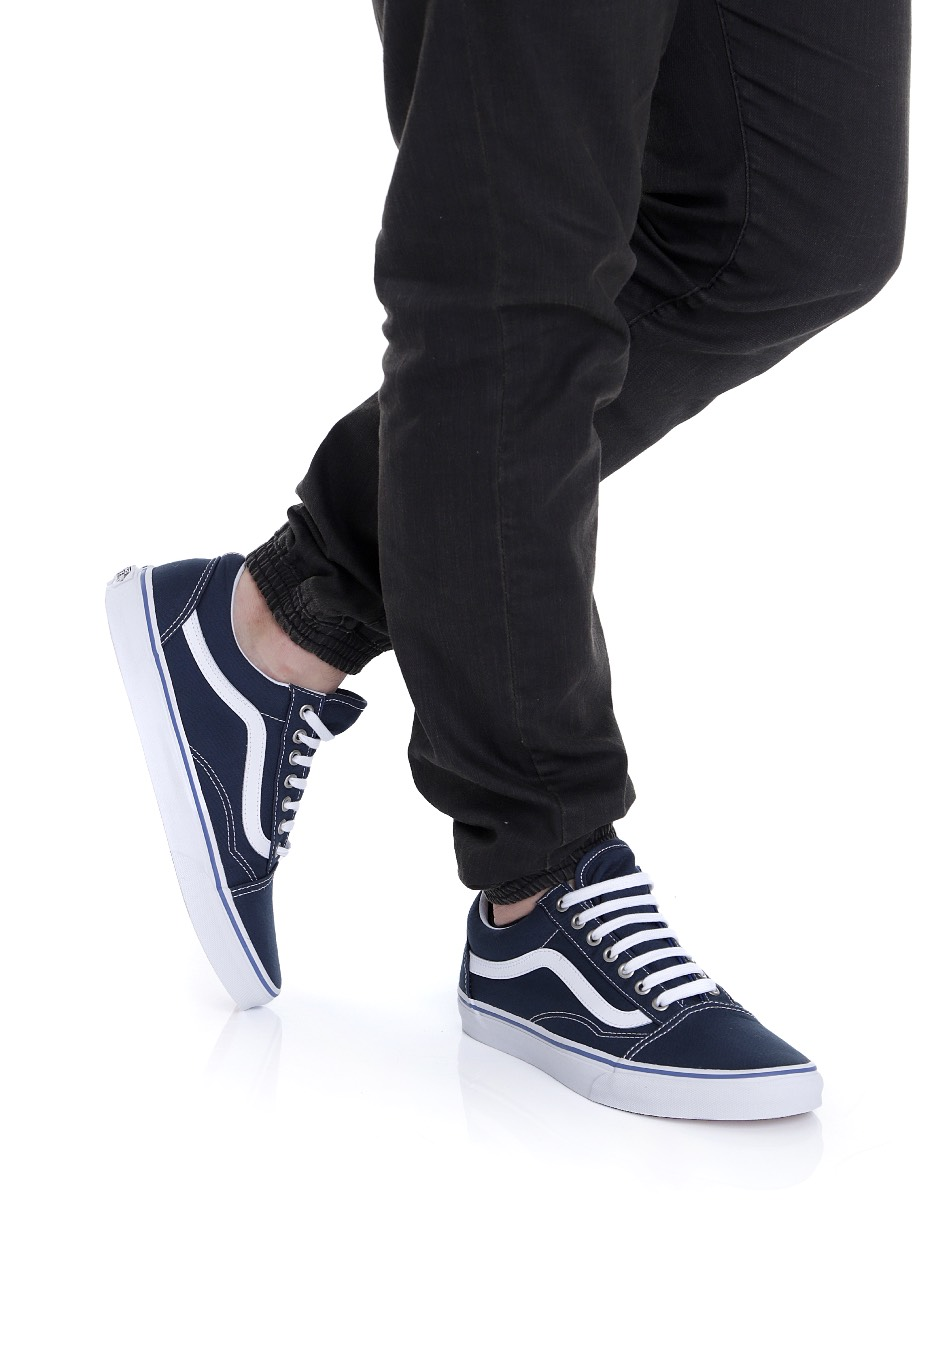 0953c4479b44 Vans - Old Skool Midnight Navy True White - Shoes - Impericon.com US